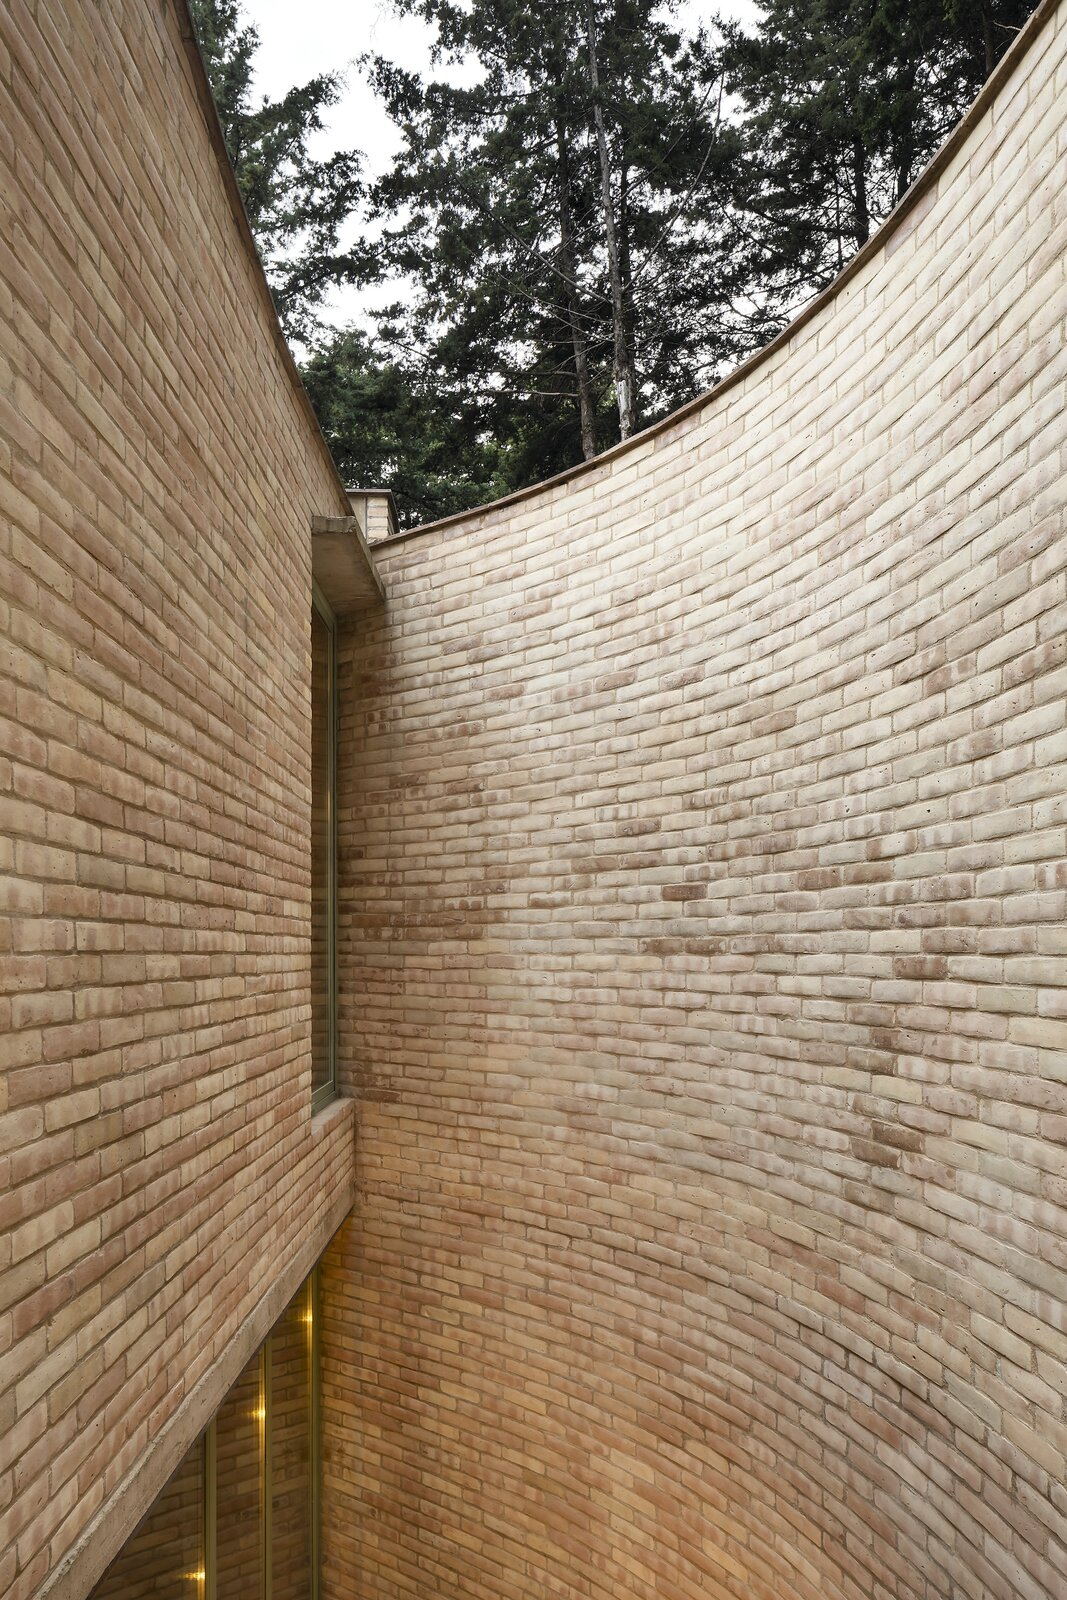 The exterior wall's gentle curve conveys a sense of enclosure.  Photo 4 of 19 in A Curvaceous Brick Home Follows the Edge of a Forest Near Mexico City